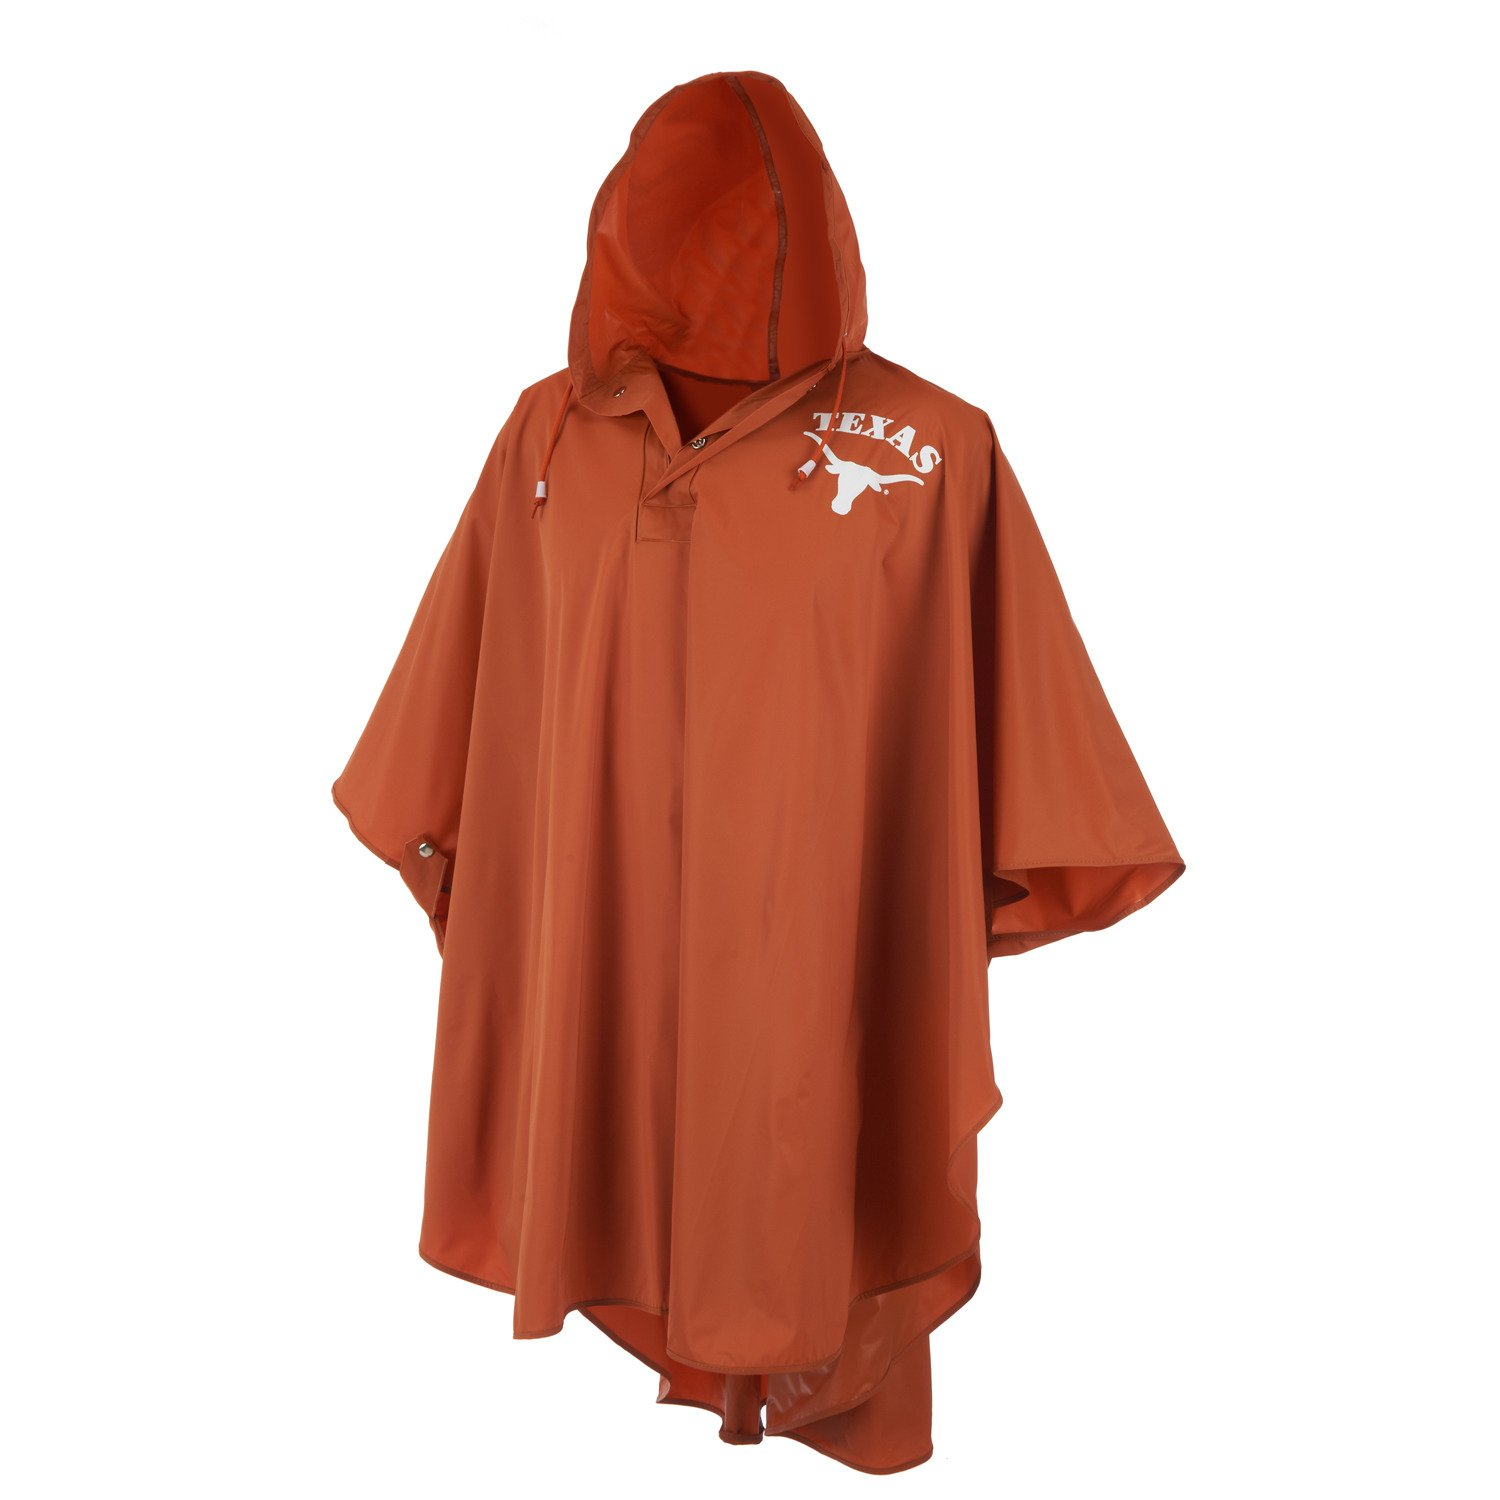 013730a6c Display product reviews for Storm Duds Men s University of Texas Slicker  Heavy Duty PVC Poncho